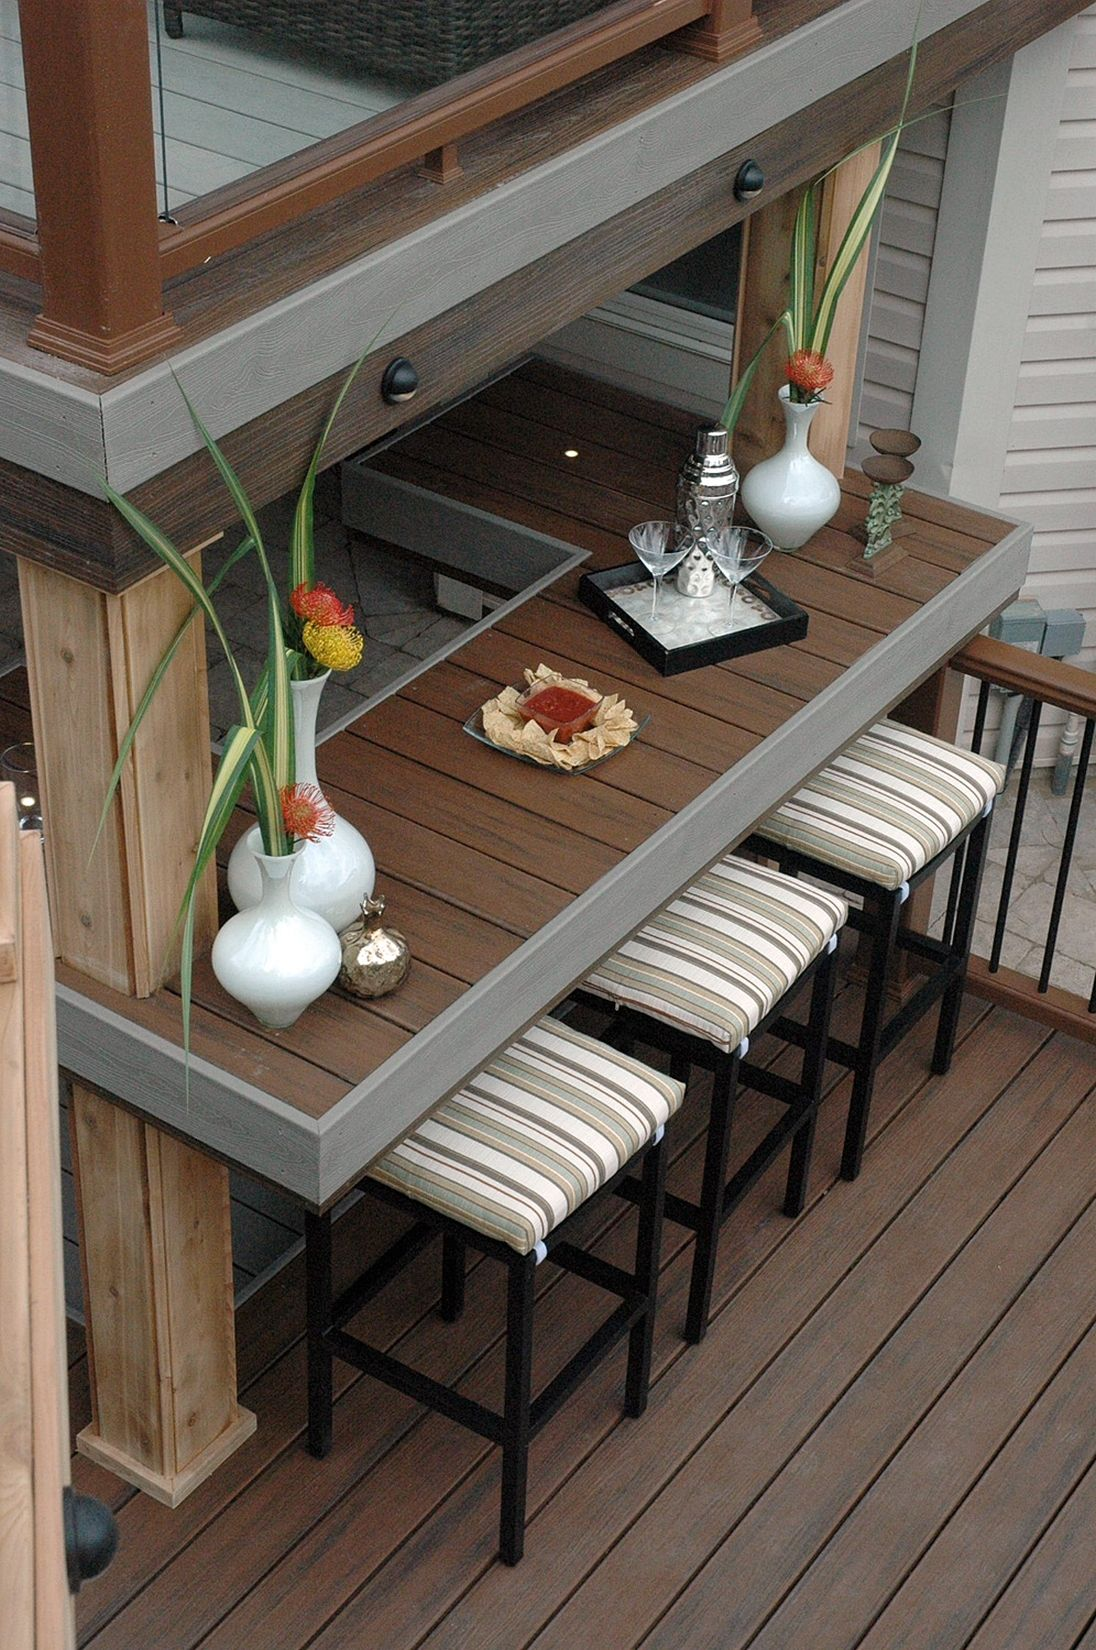 100+ Clever Ideas To Decorate Your Deck Seating | Decking, Clever ...